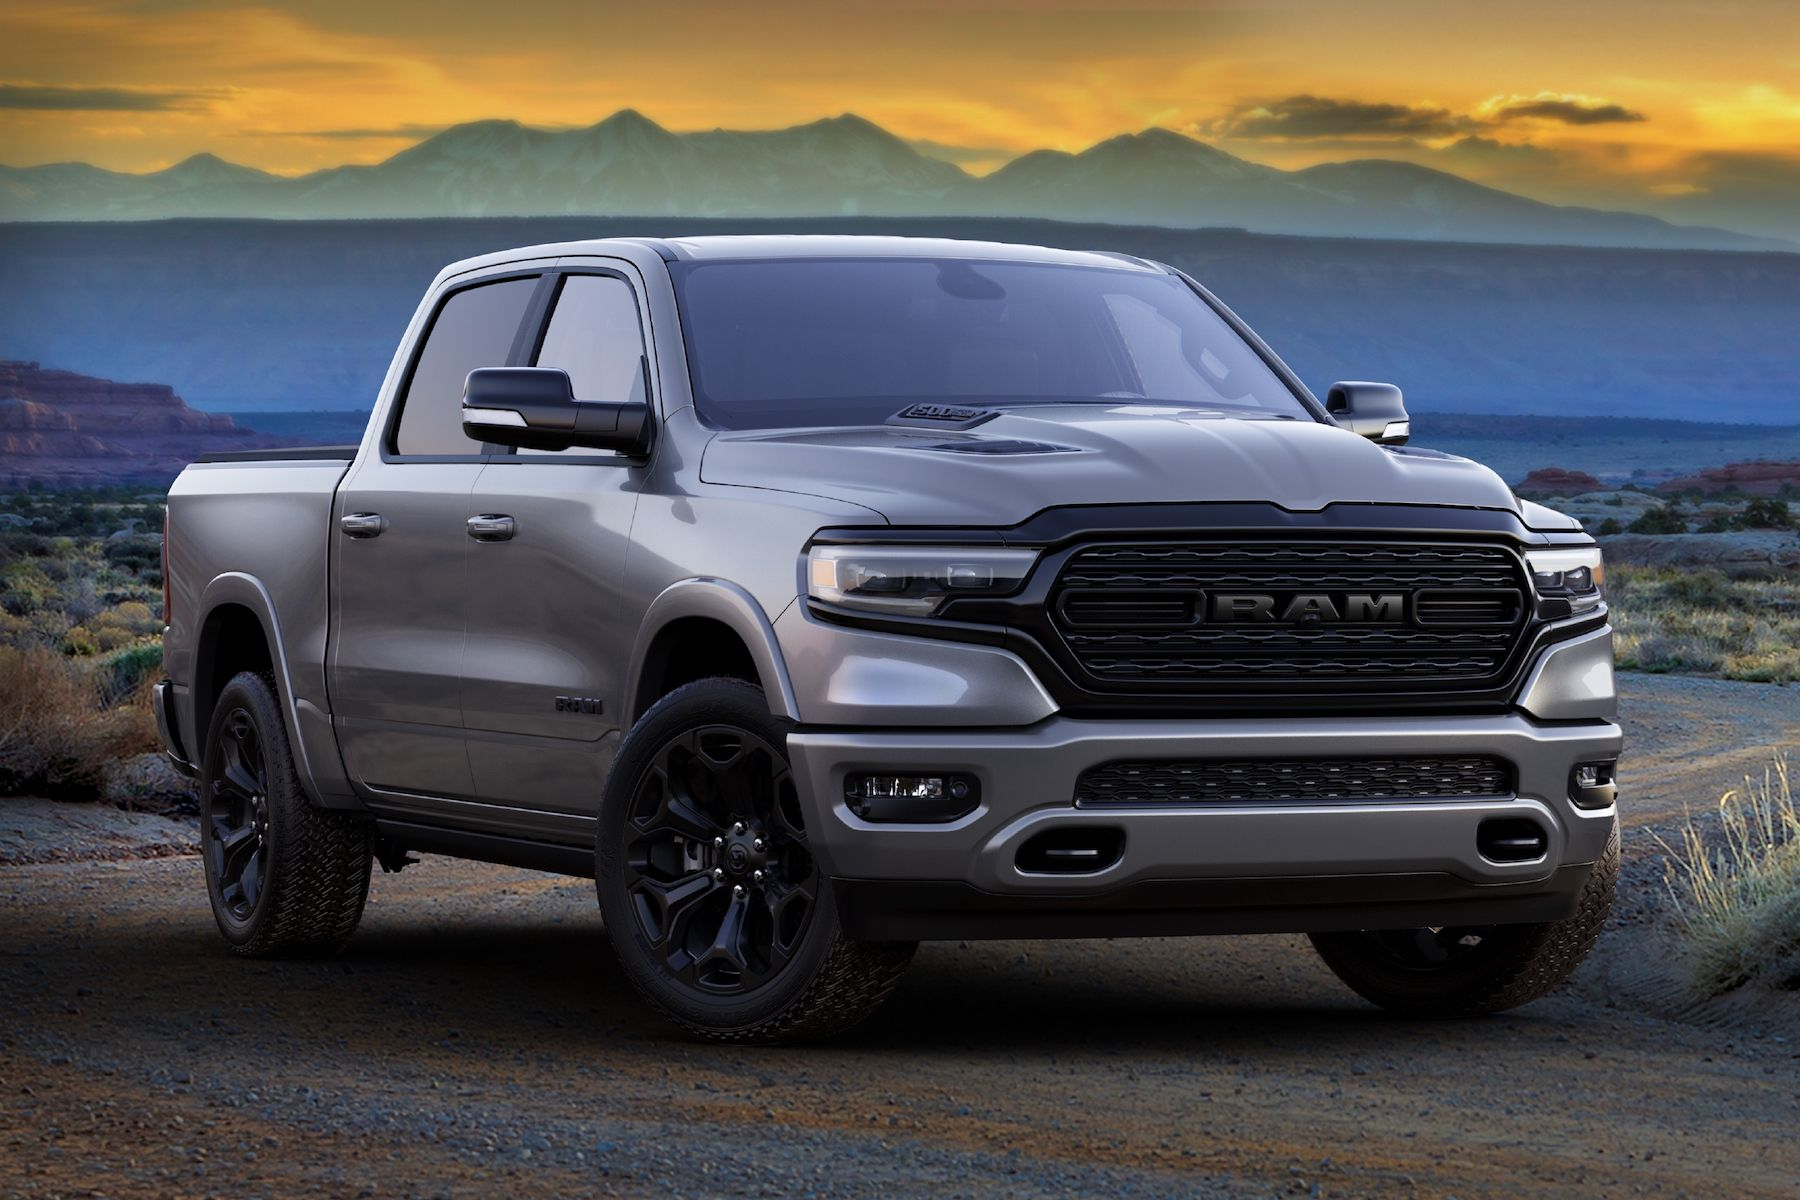 2021 Ram 1500 Limited Night front 3/4